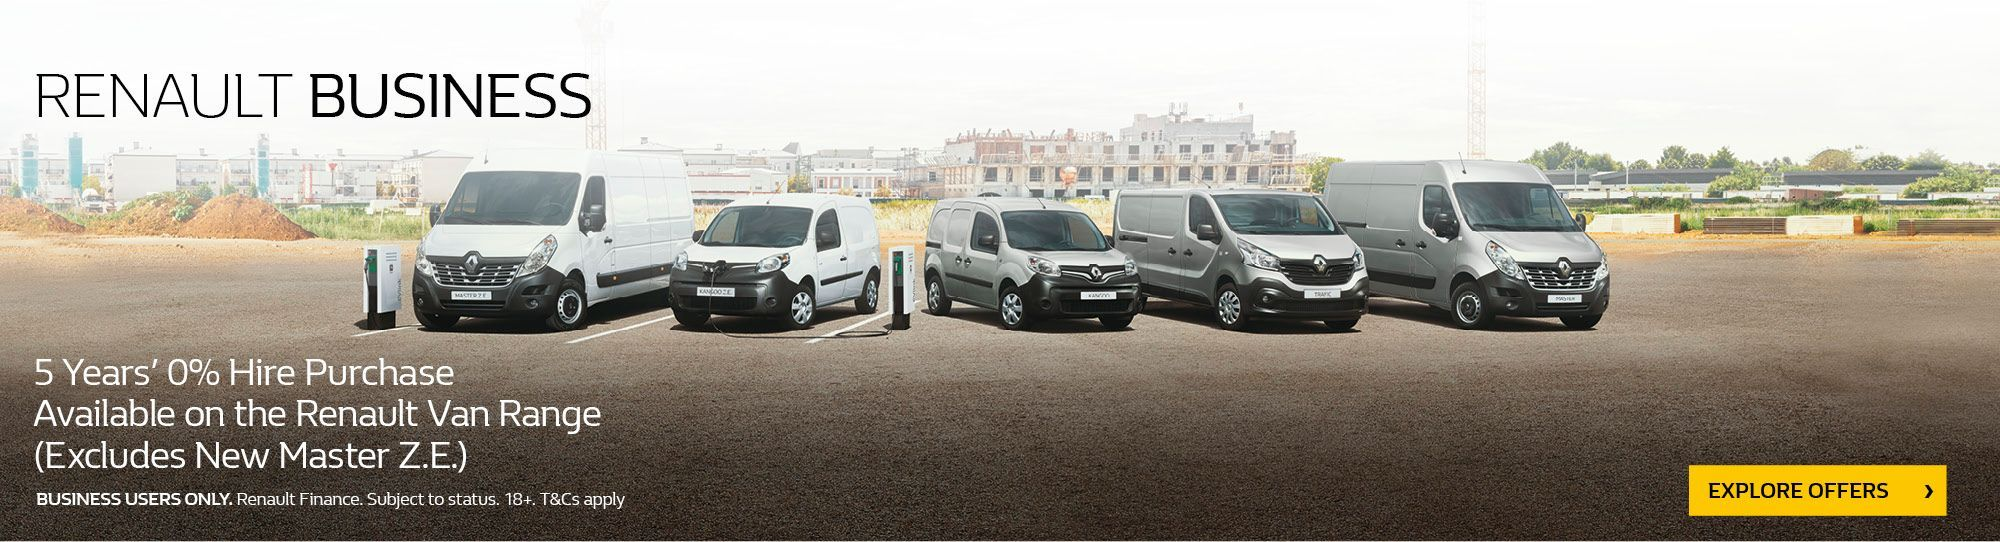 Renault Fleet & Business users at CCR Motor Co